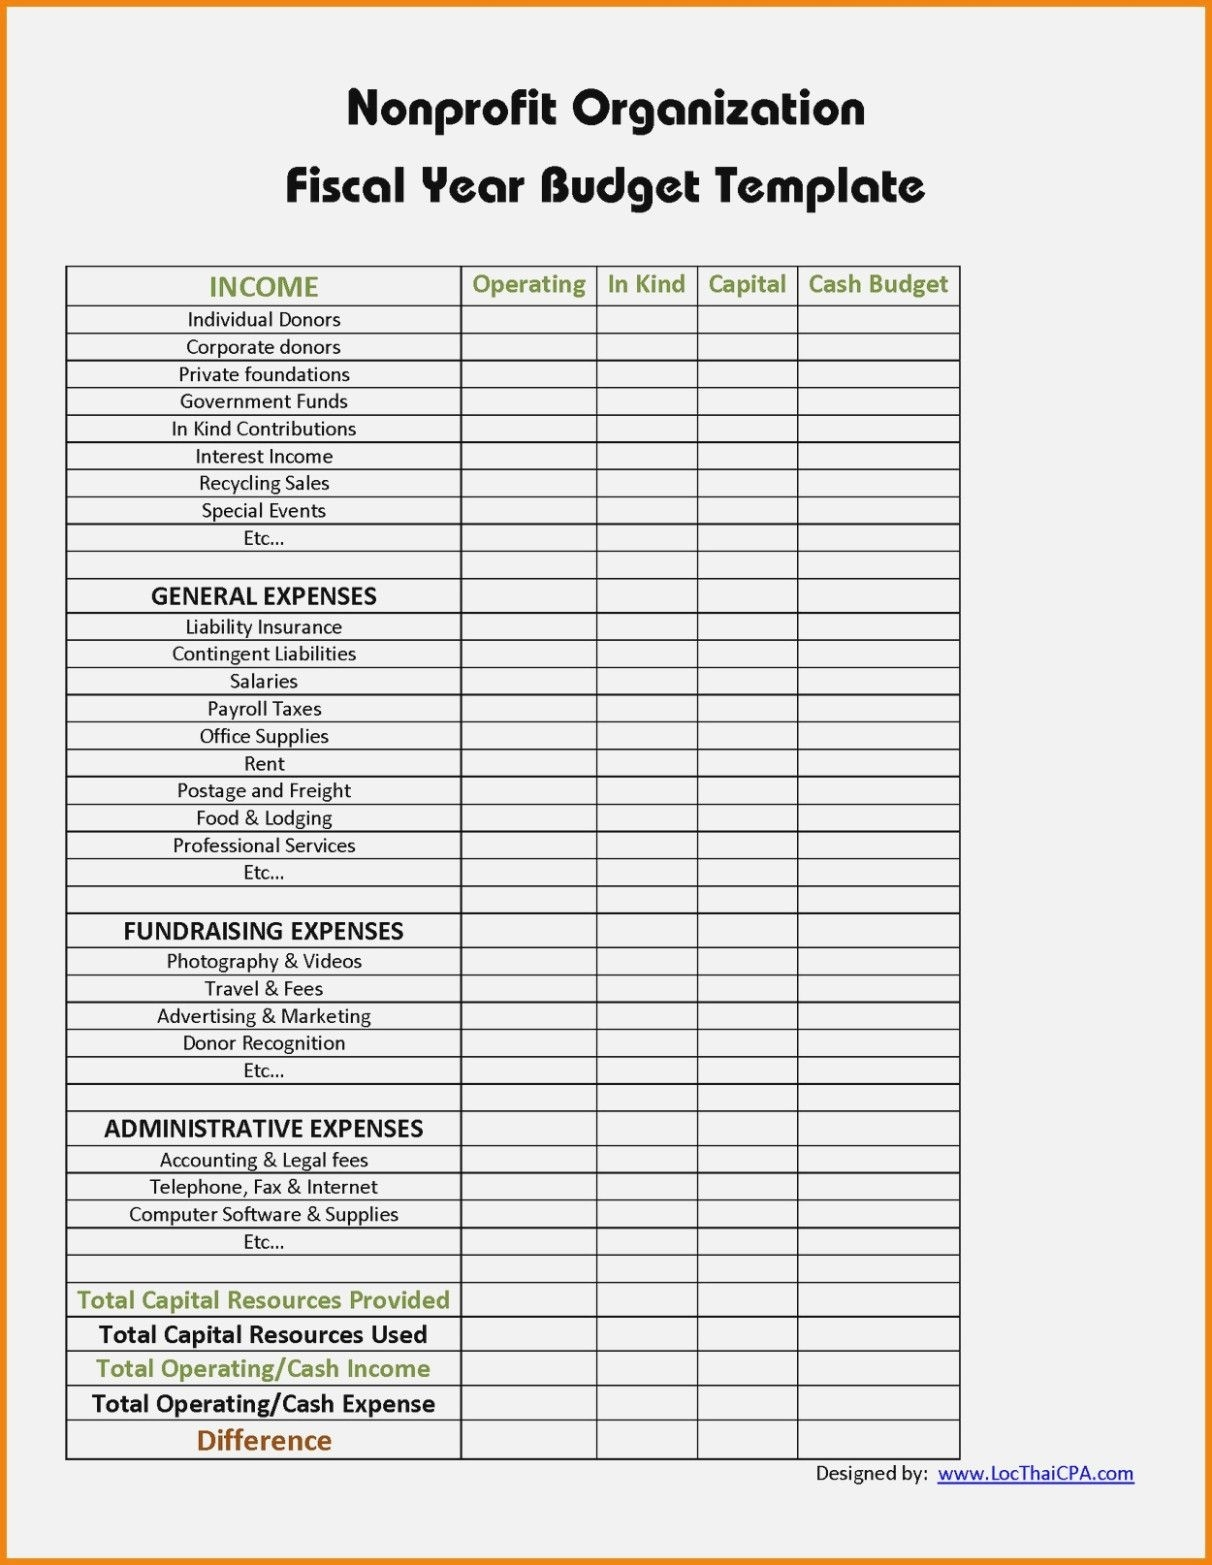 10 Treasurers Report Template In 2020 (With Images) | Budget